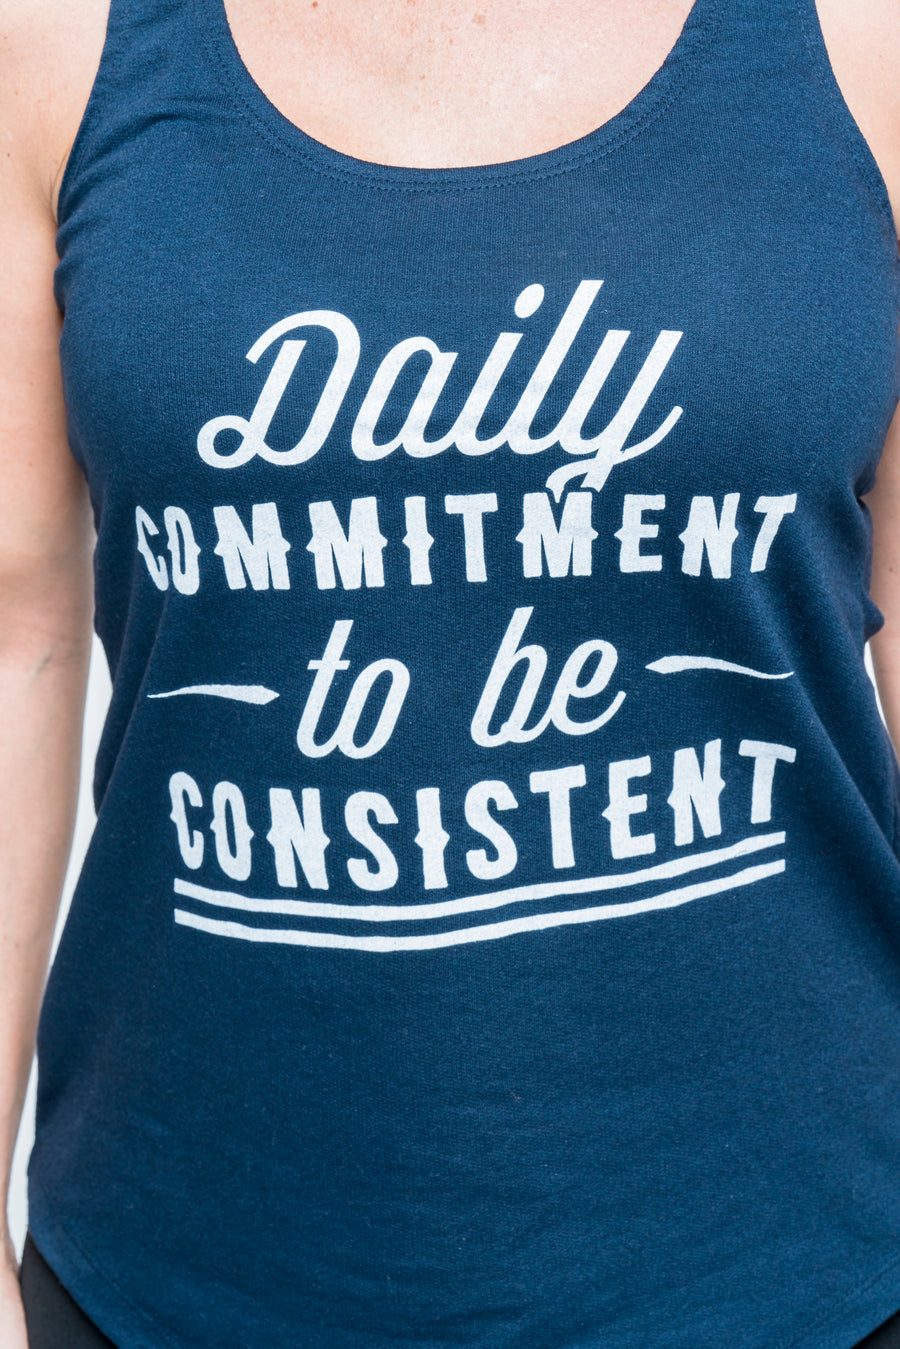 Daily Commitment to be Consistent Tank